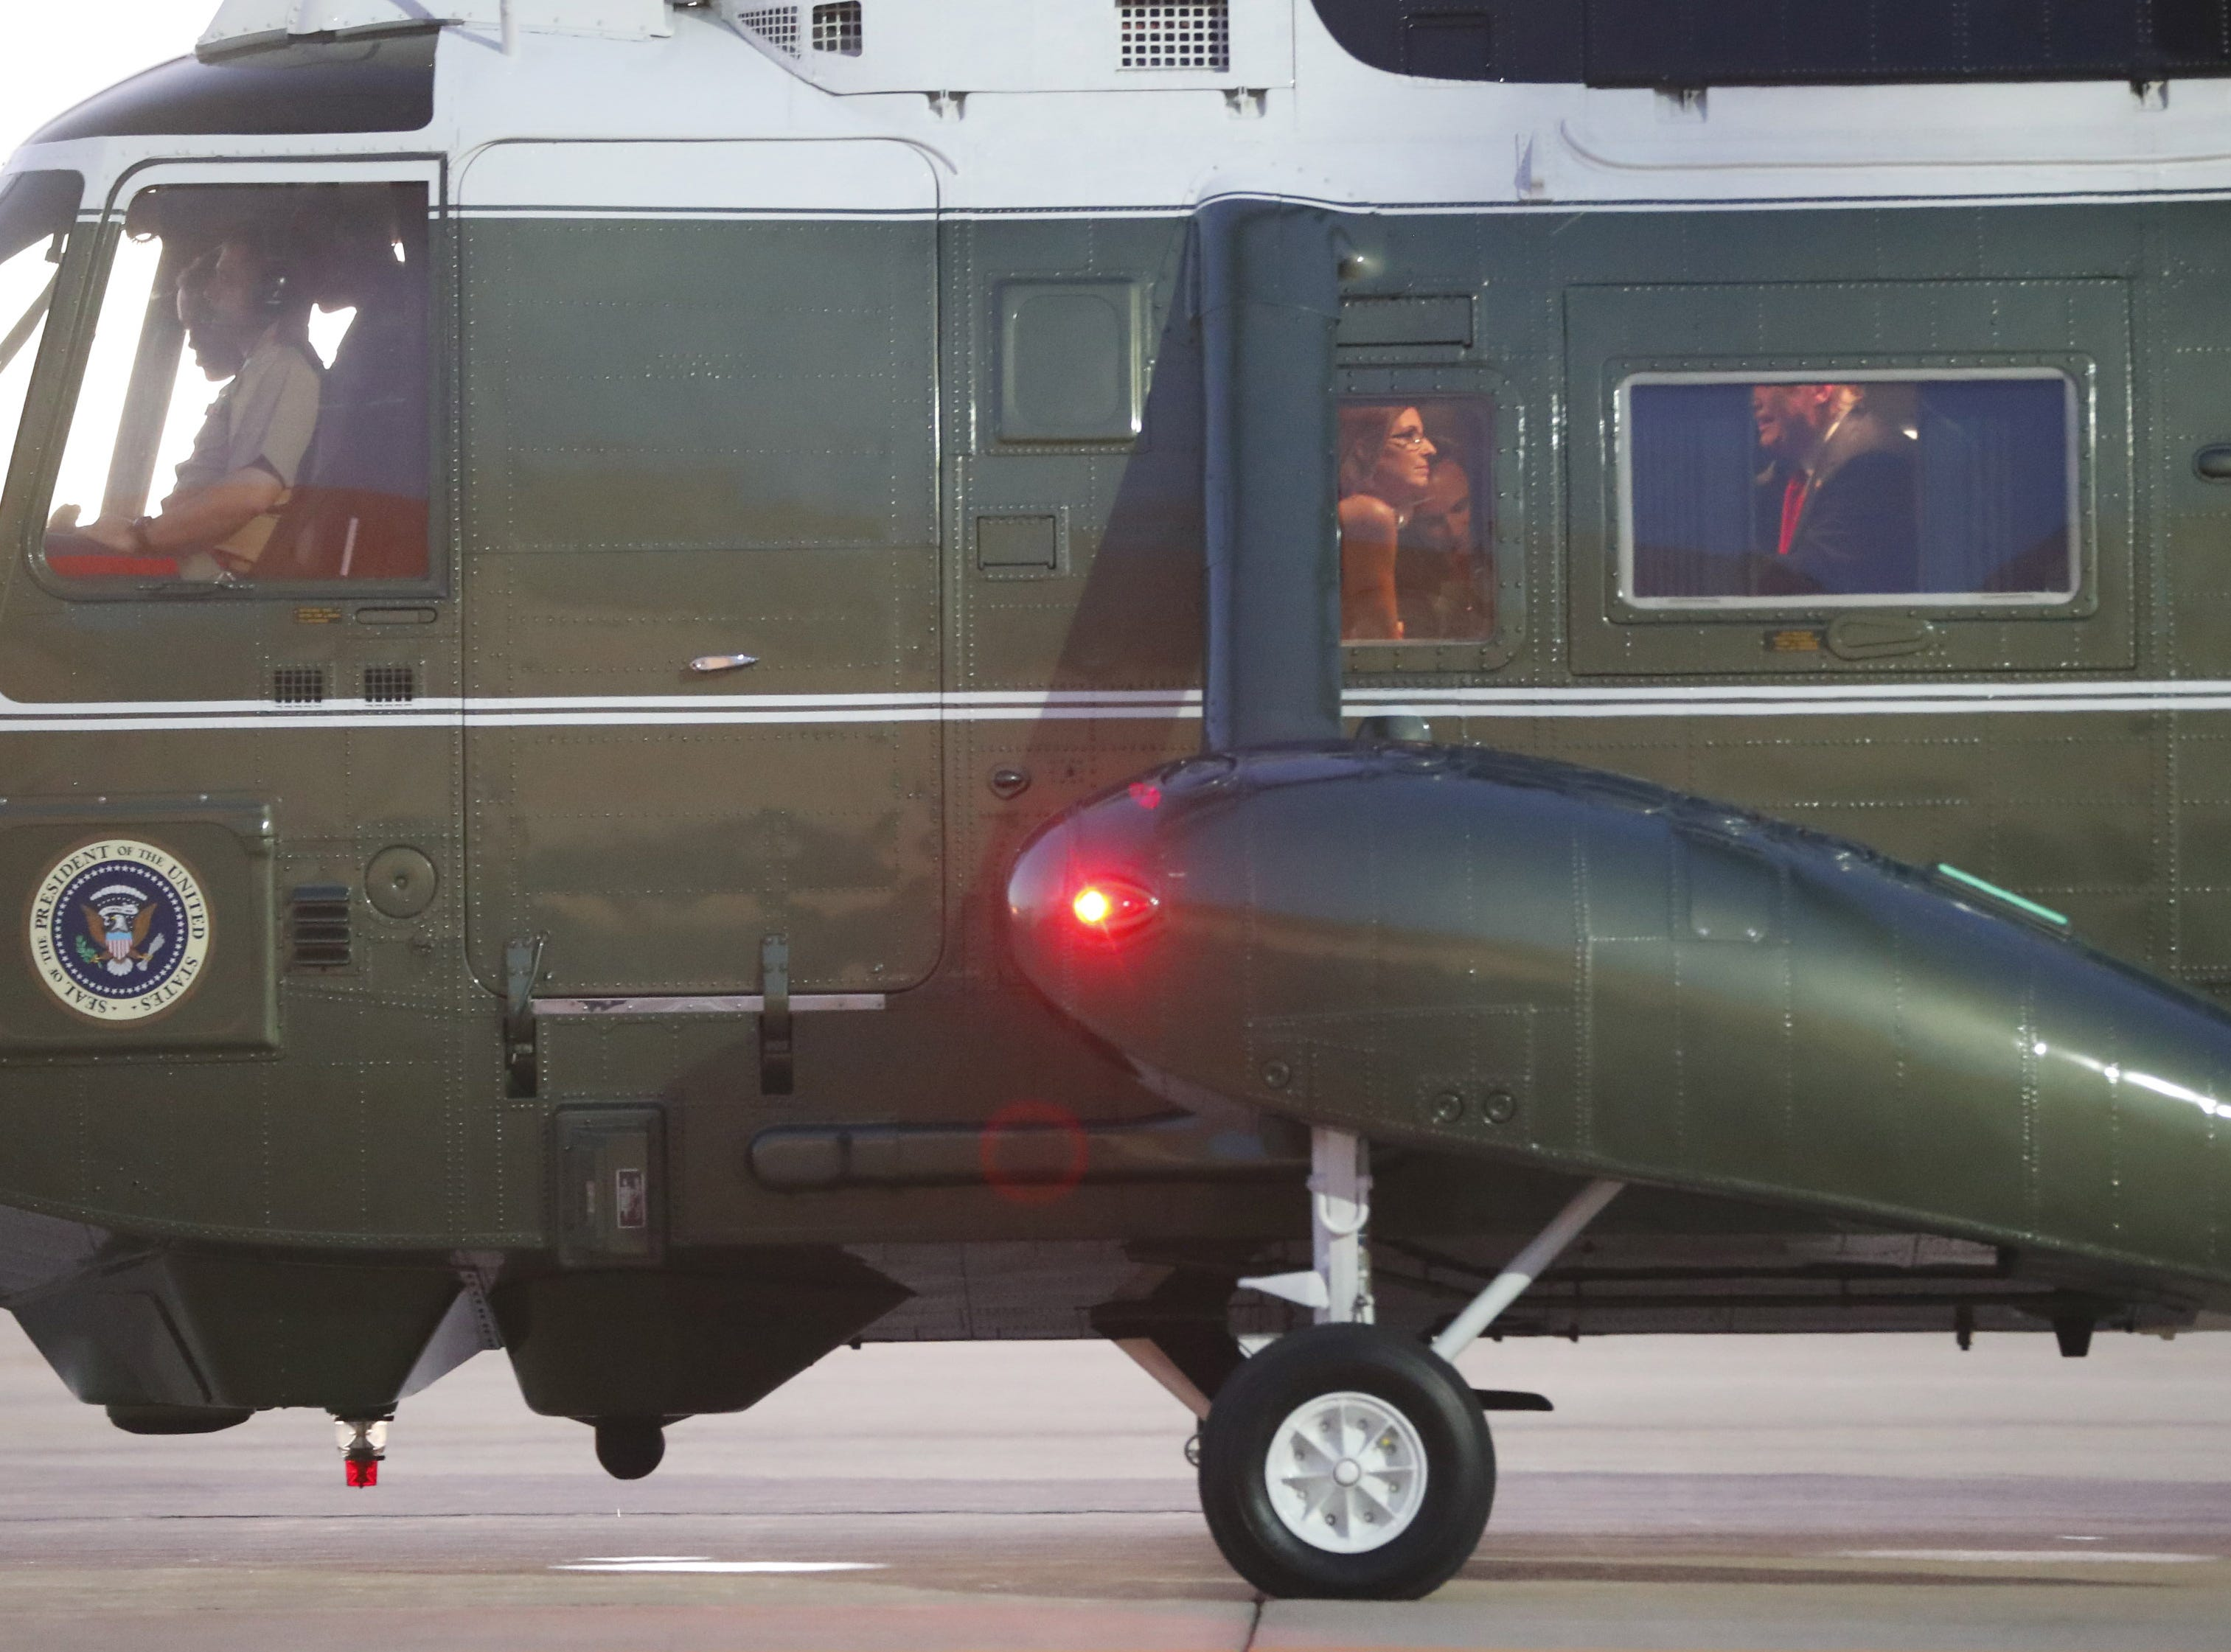 Rep. Martha McSally talks with President Donald Trump on Marine One after a defense capability tour at Luke Air Force Base in Glendale, on Oct. 19, 2018.